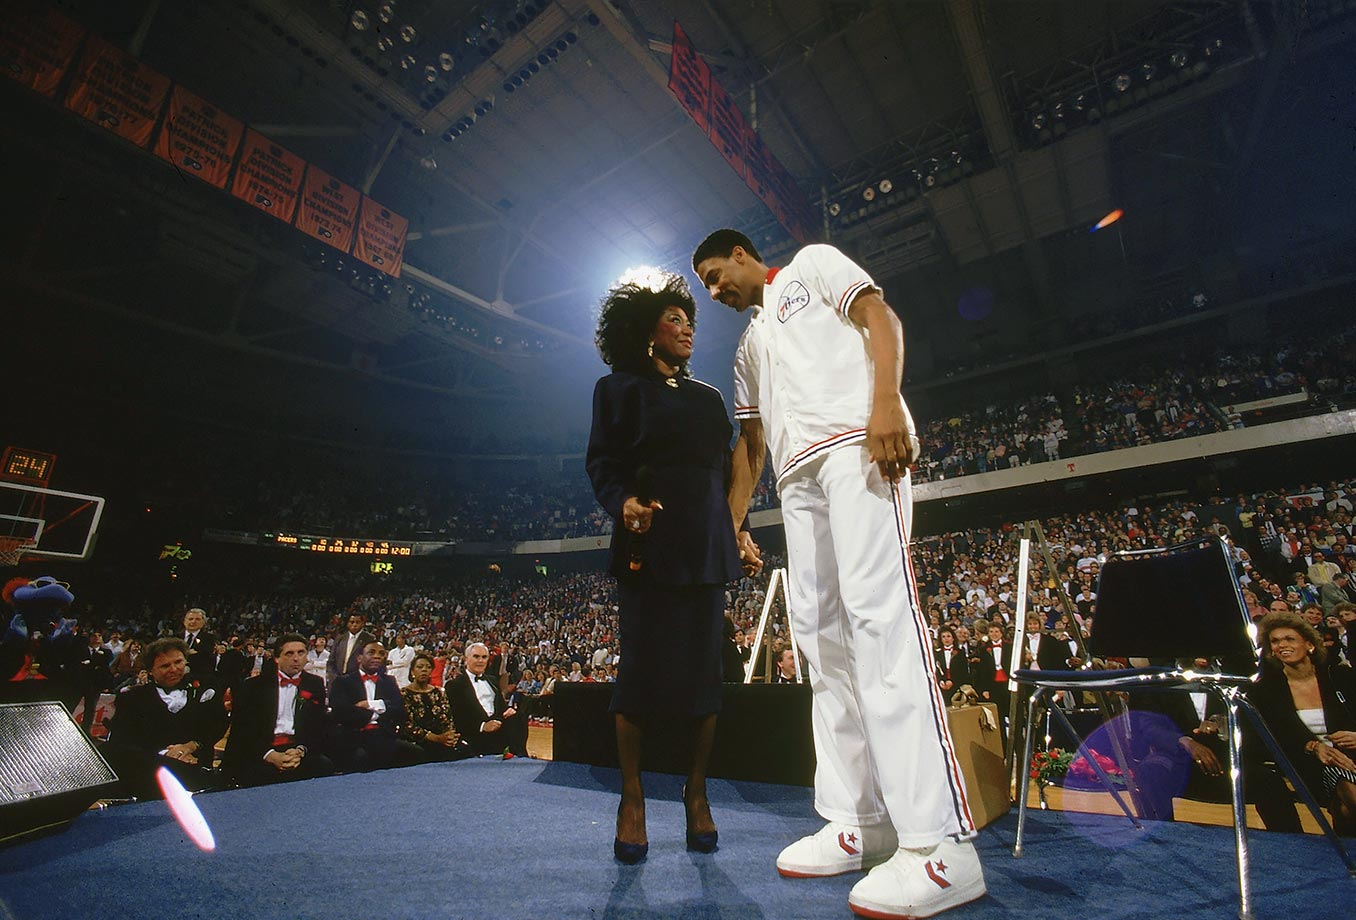 Patti LaBelle was one of the performers at Dr. J's farewell ceremony at The Spectrum in 1987.